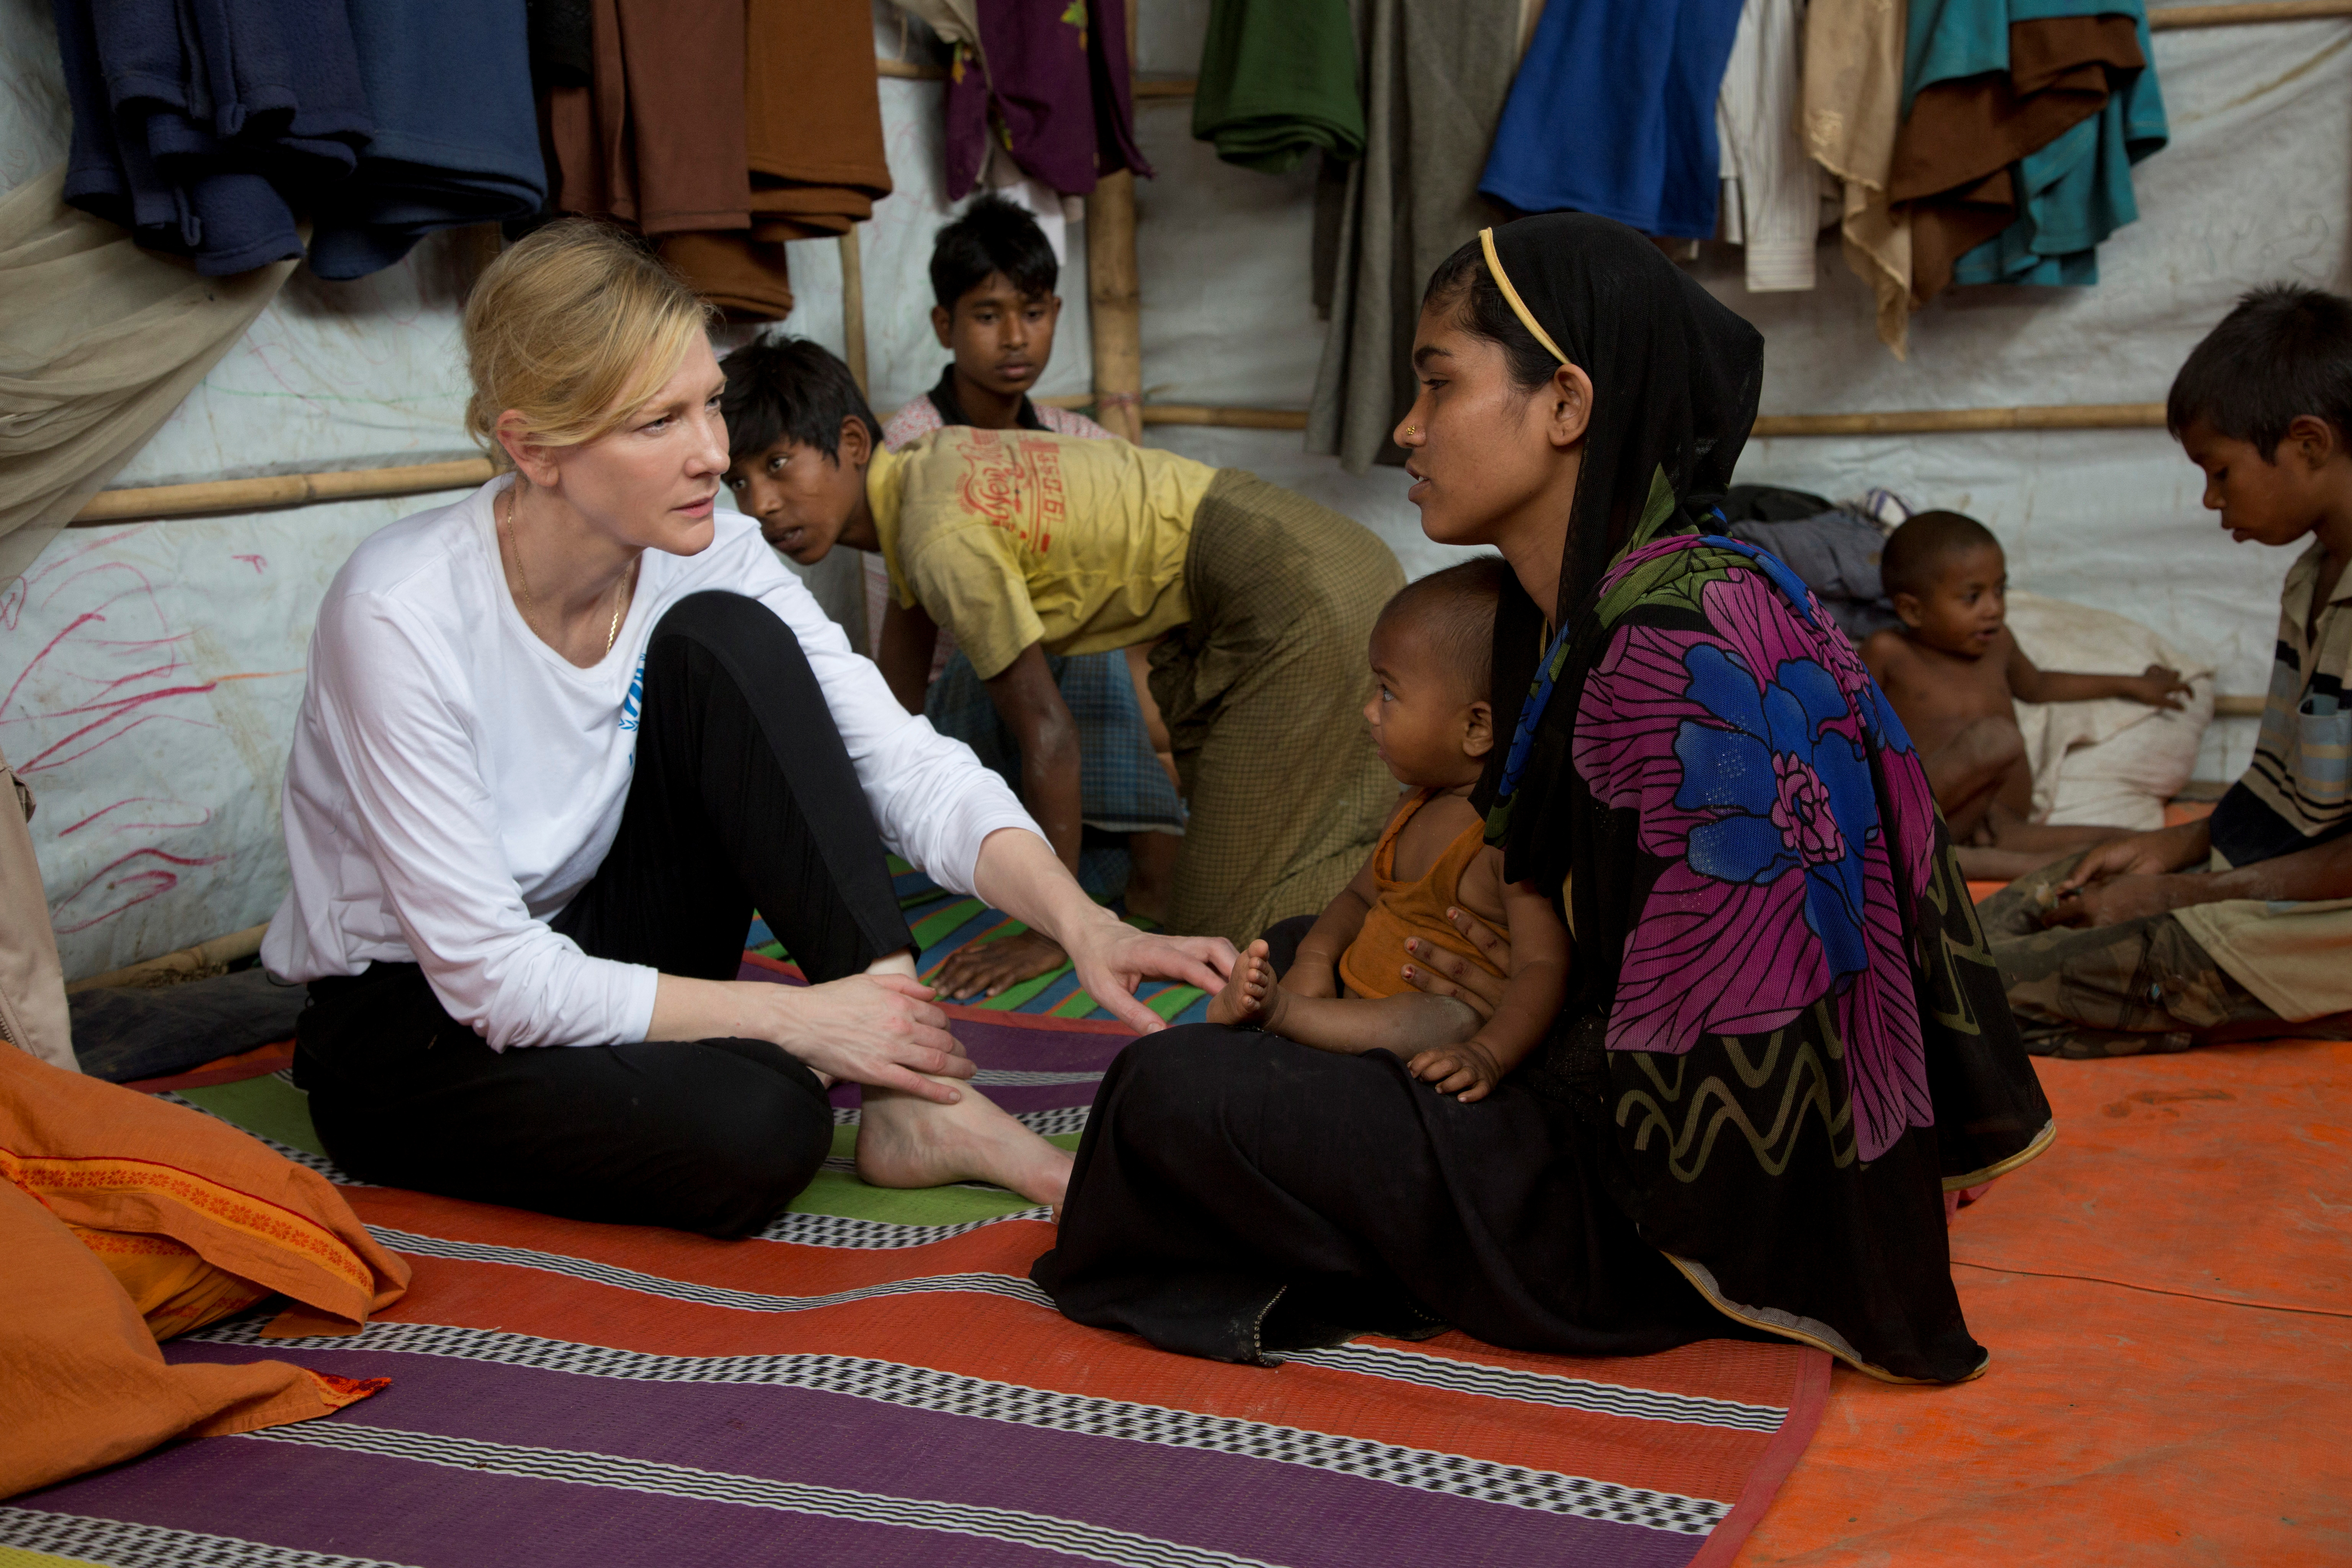 Cate Blanchett, Goodwill Ambassador for UNHCR, the UN Refugee Agency, speaks with Rohingya refugee Nur Fatima and her one-year-old son at the Nayapara refugee camp near Cox's Bazar, Bangladesh March 15, 2018. UNHCR/Hector Perez/Handout via REUTERS